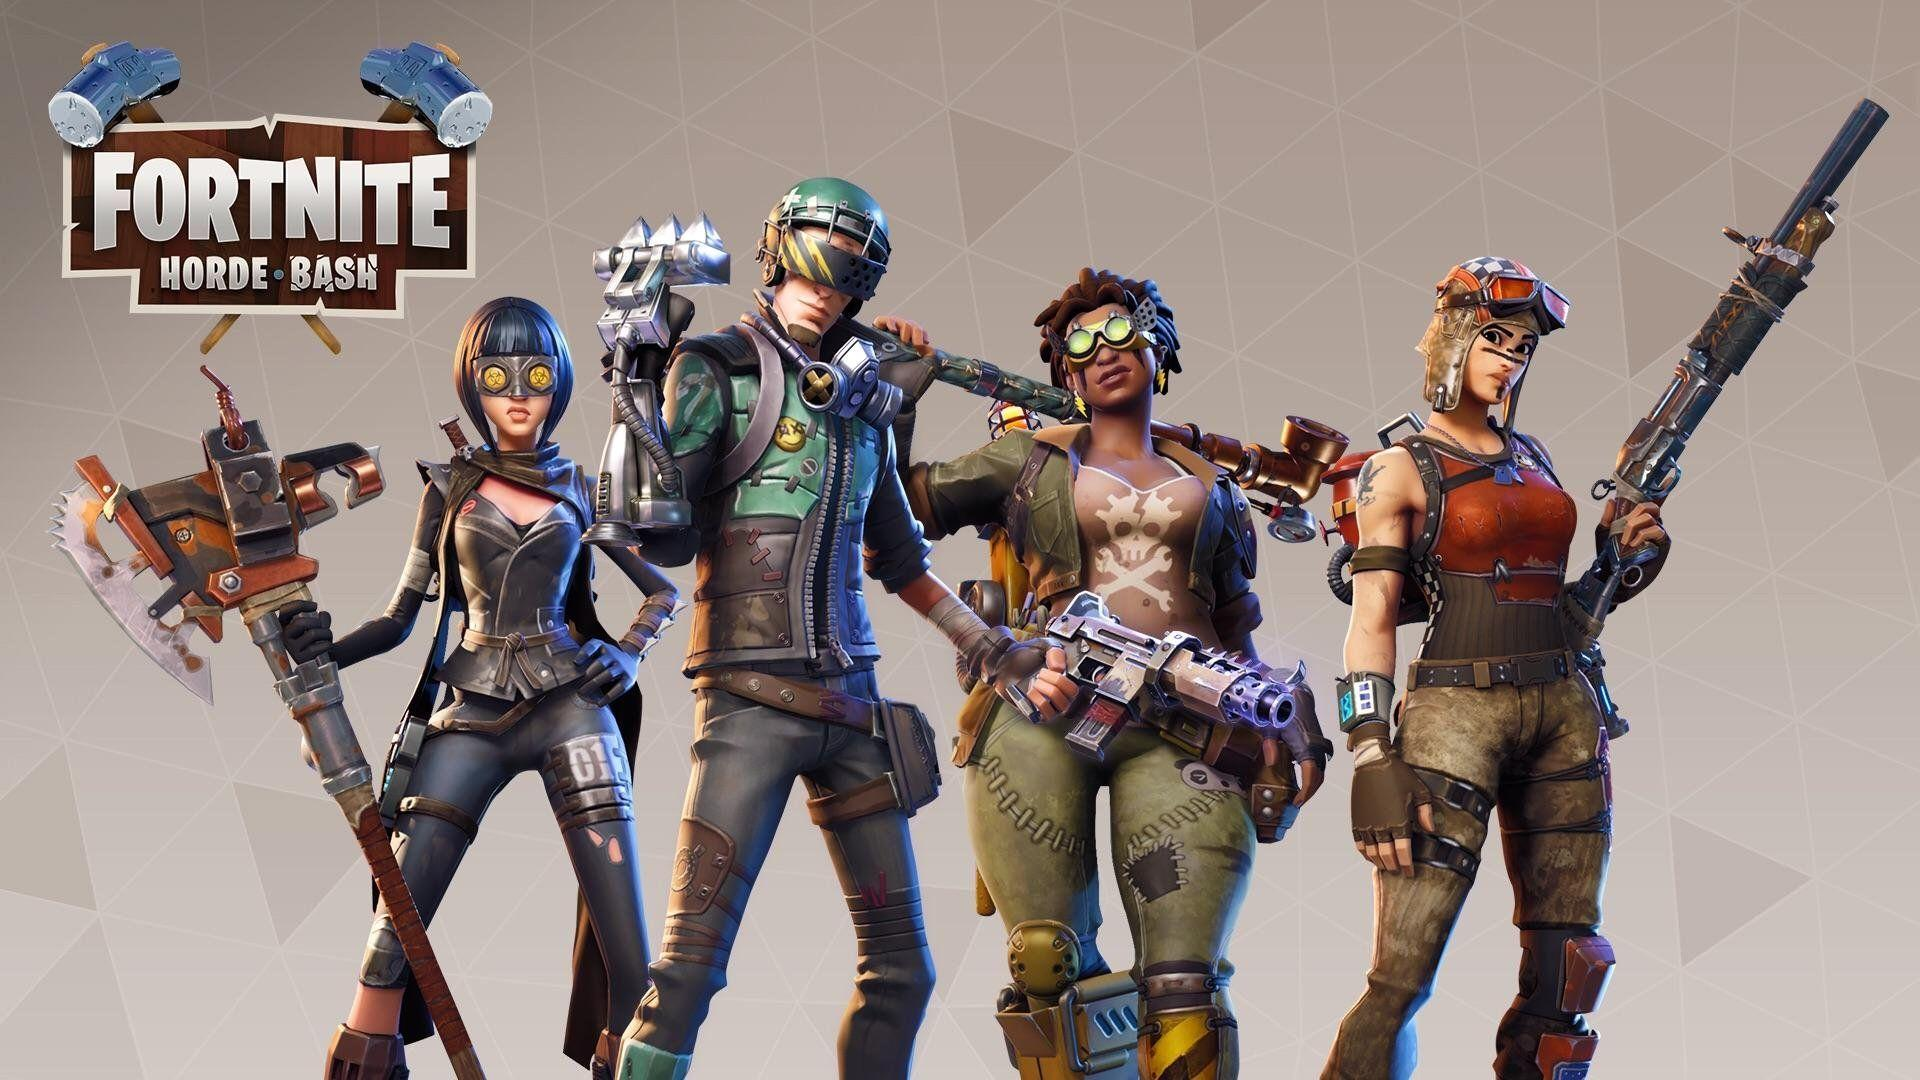 Could Renegade Raider recieve a revamp please? In stw she has